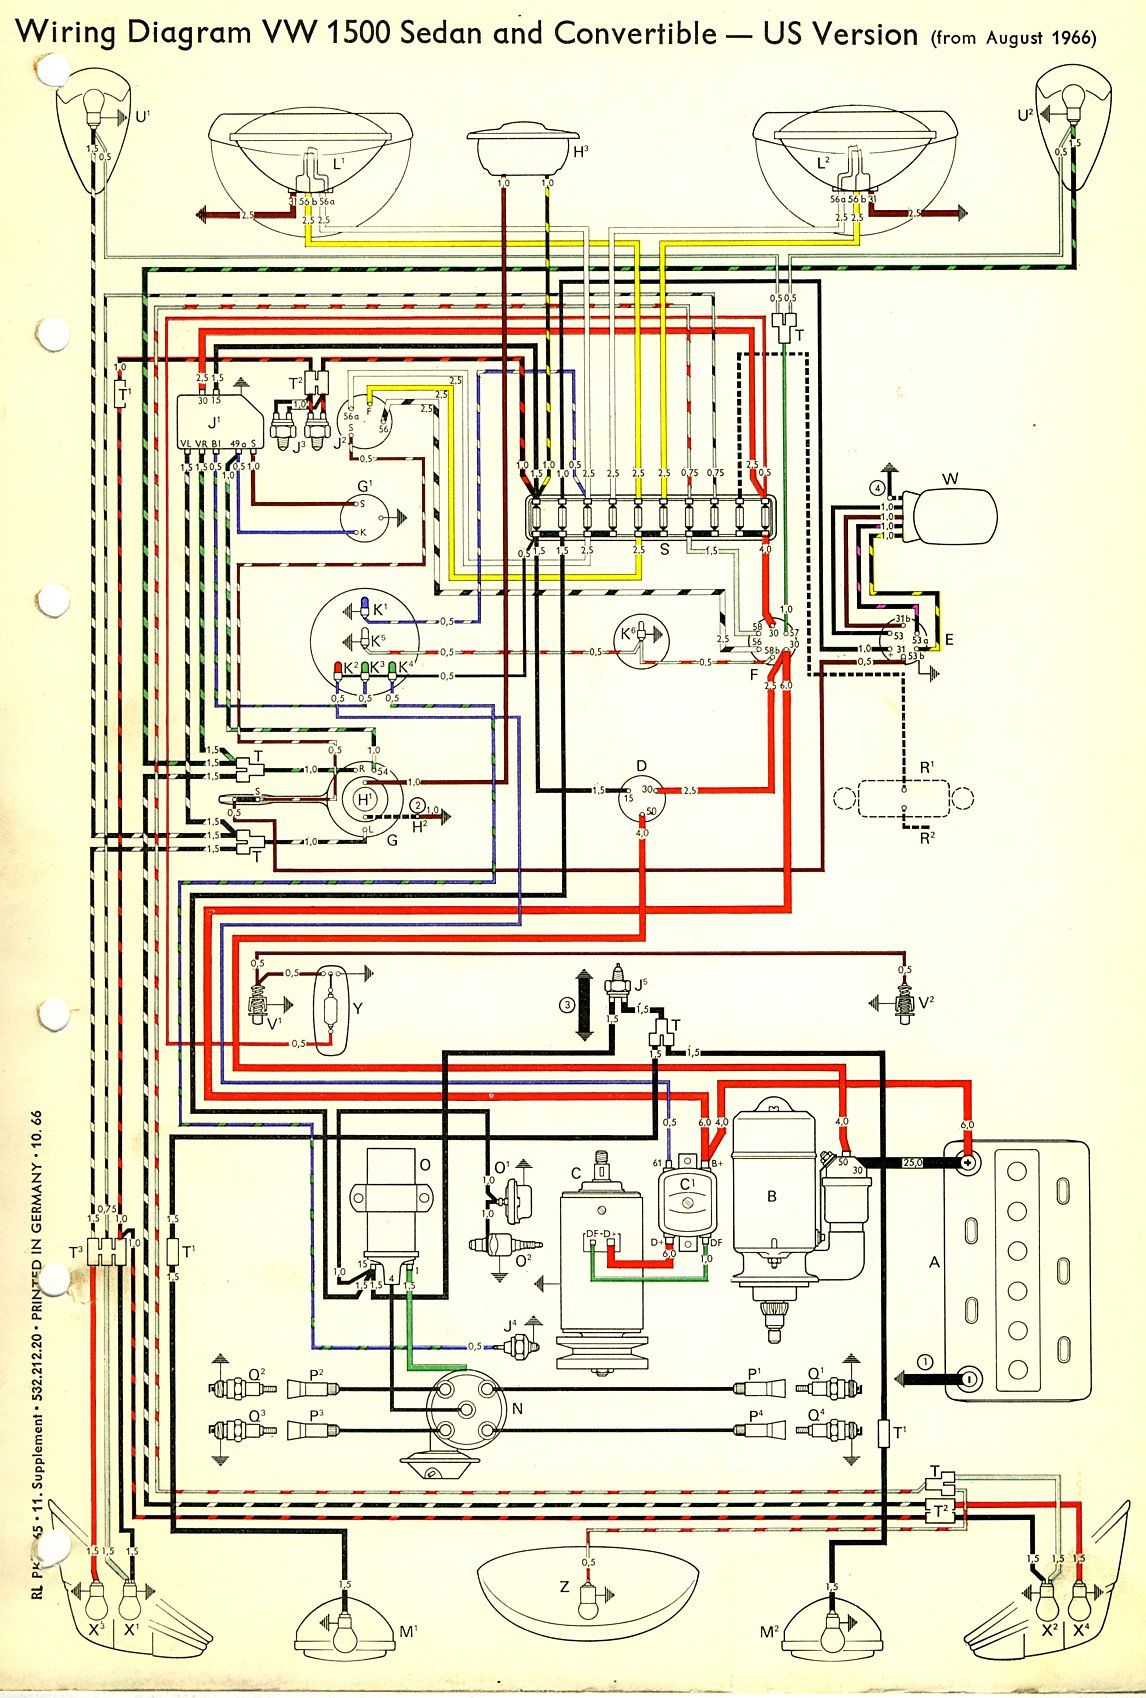 1adf990c0efb617c789fdd21338448b0 1967 beetle wiring diagram (usa) thegoldenbug com best 1967 vw vw beetle wiring diagram at pacquiaovsvargaslive.co